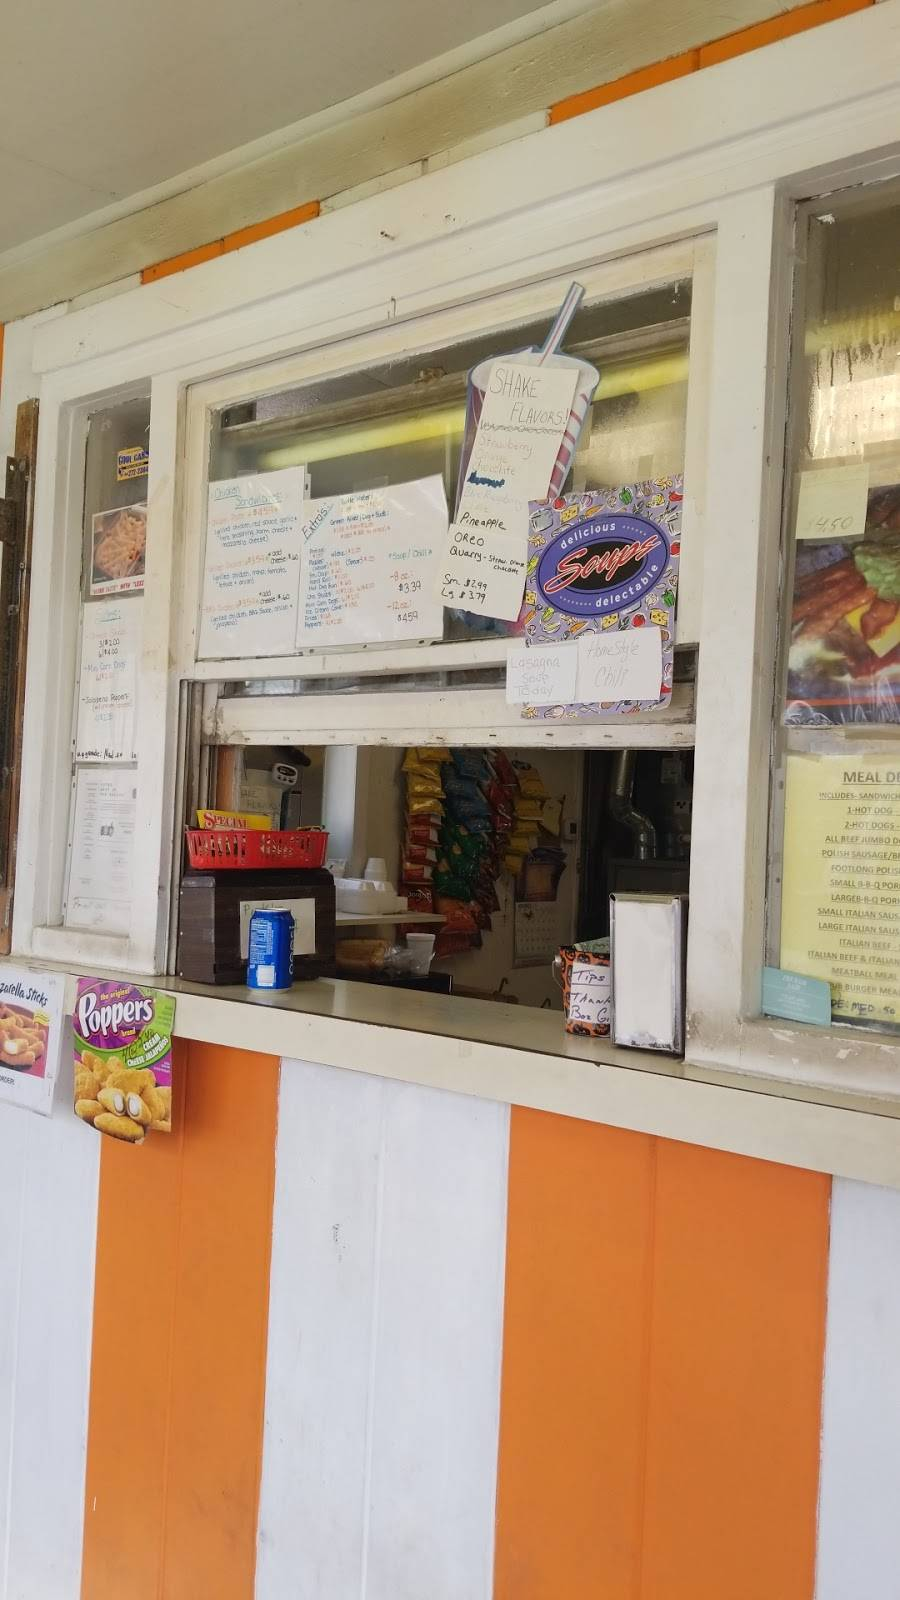 Boz Hot Dogs | meal takeaway | 201 S Williams St, Thornton, IL 60476, USA | 7088776262 OR +1 708-877-6262